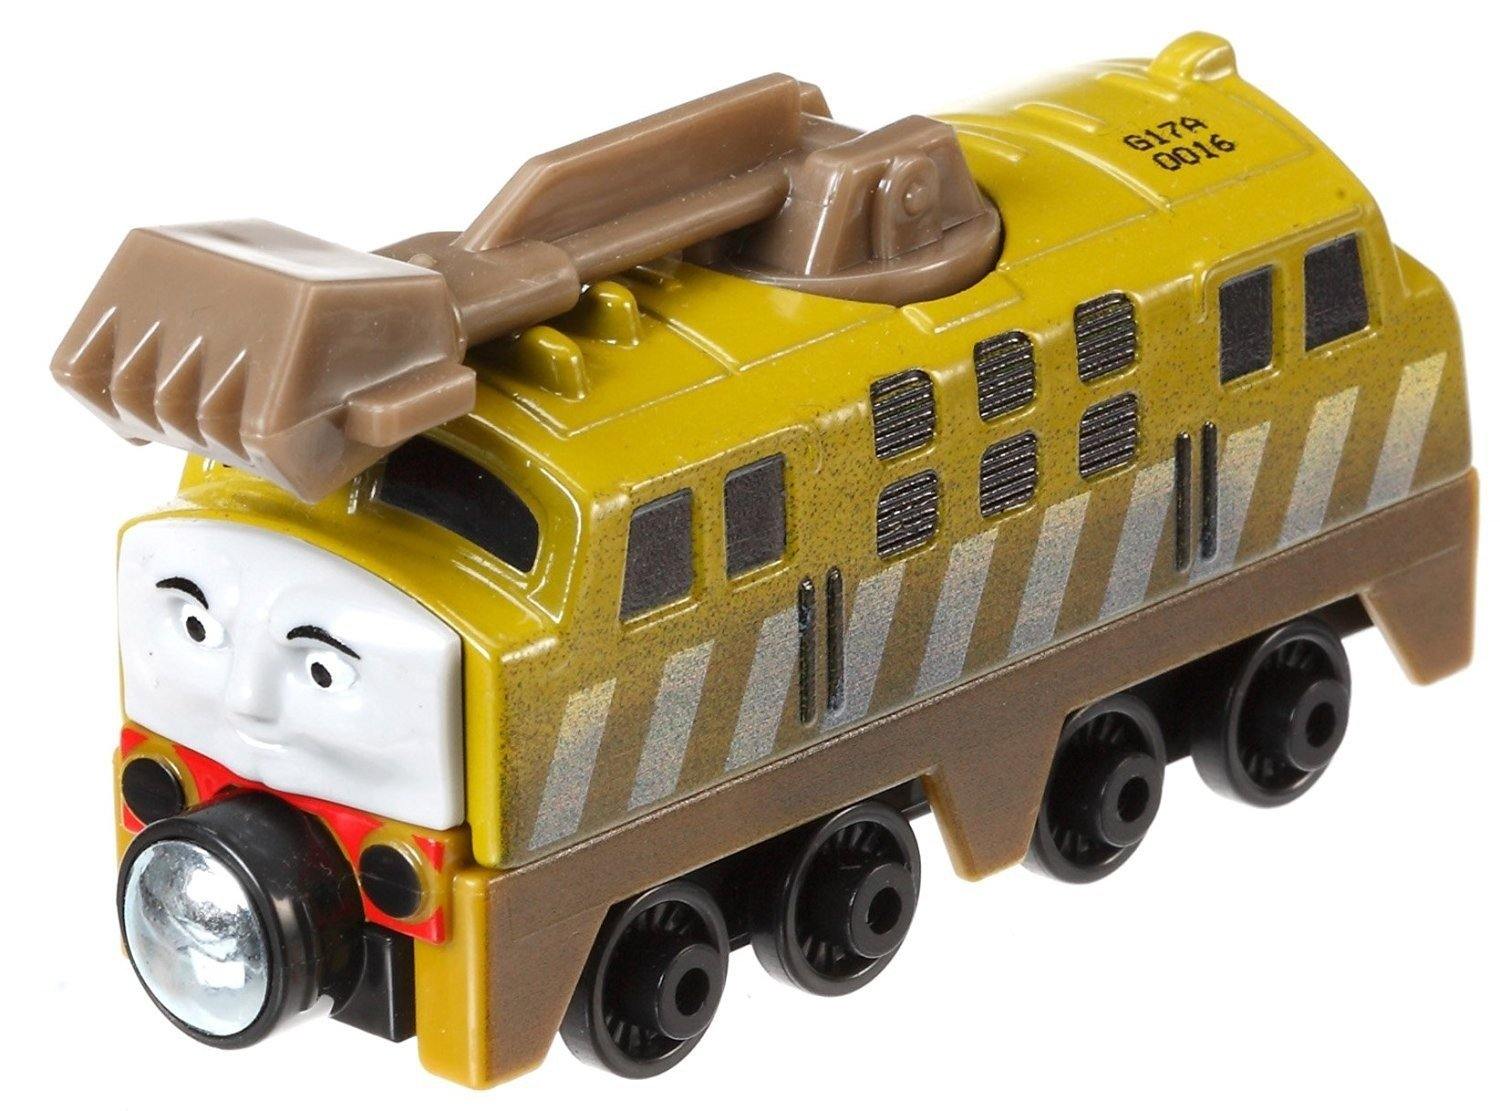 Fisher Price Thomas & Friends Take-N-Play Diesel 10 Vehicle, Sturdy collectible die-cast train engine By... by